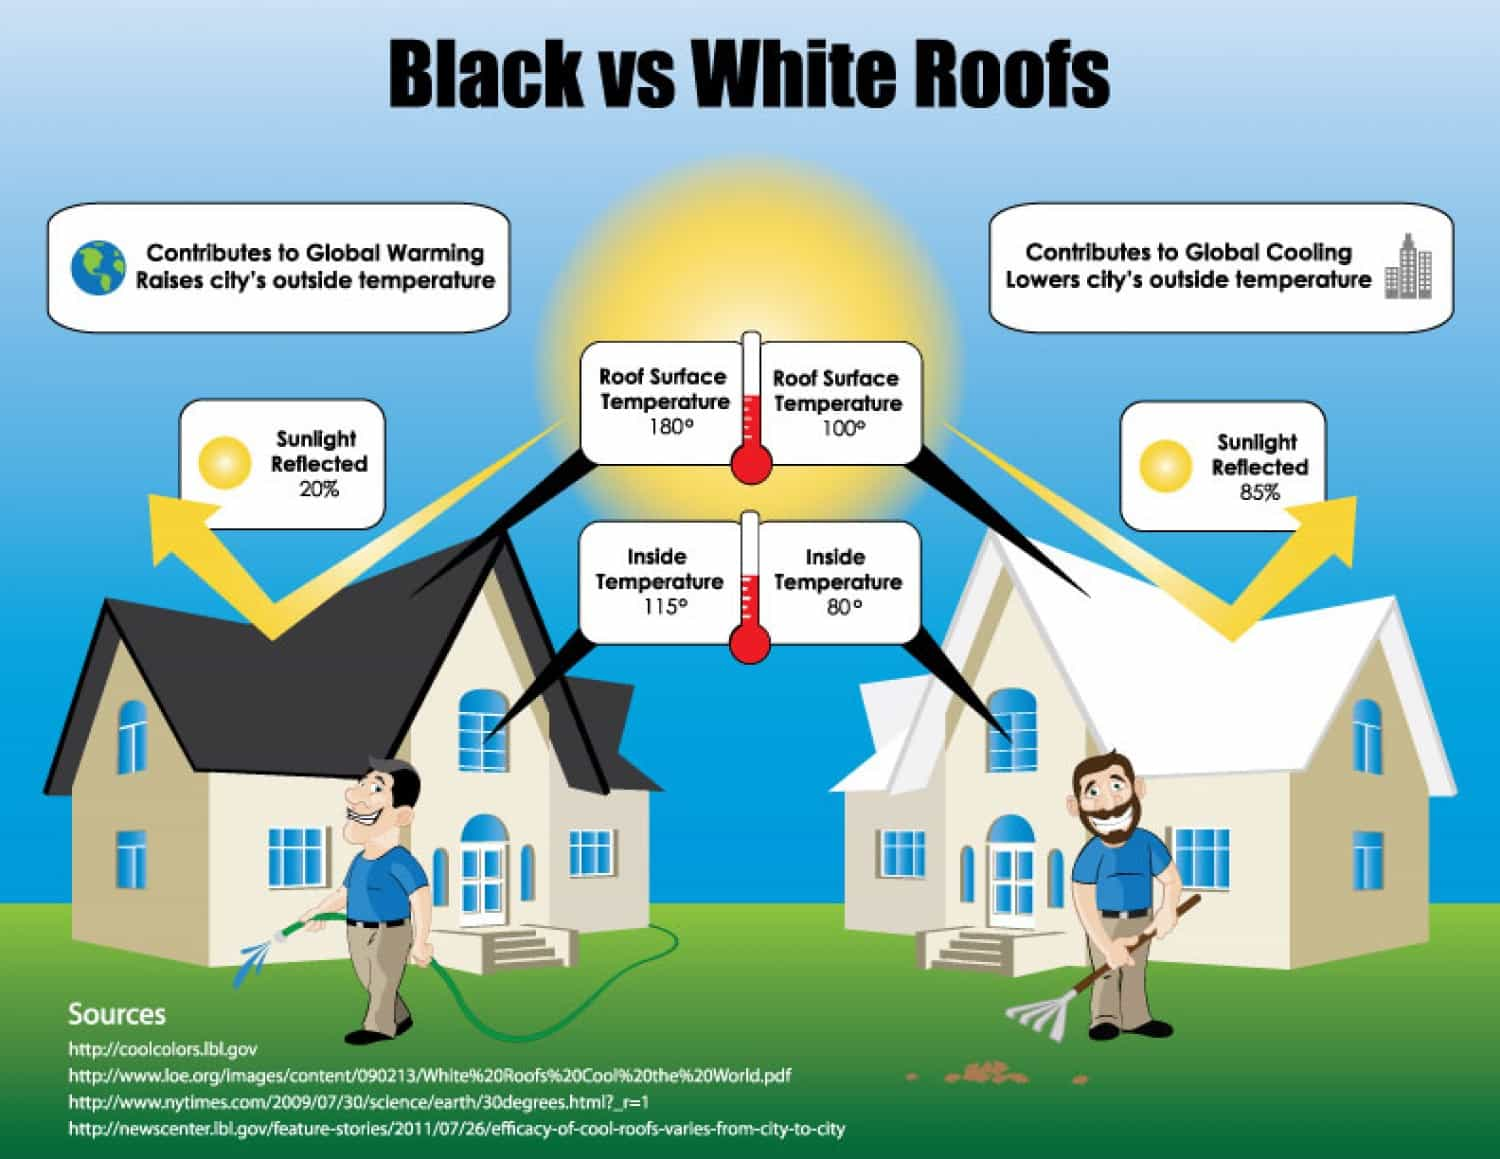 Home improvement ideas  ·  Black vs white roofs · Via www.sweethings.net